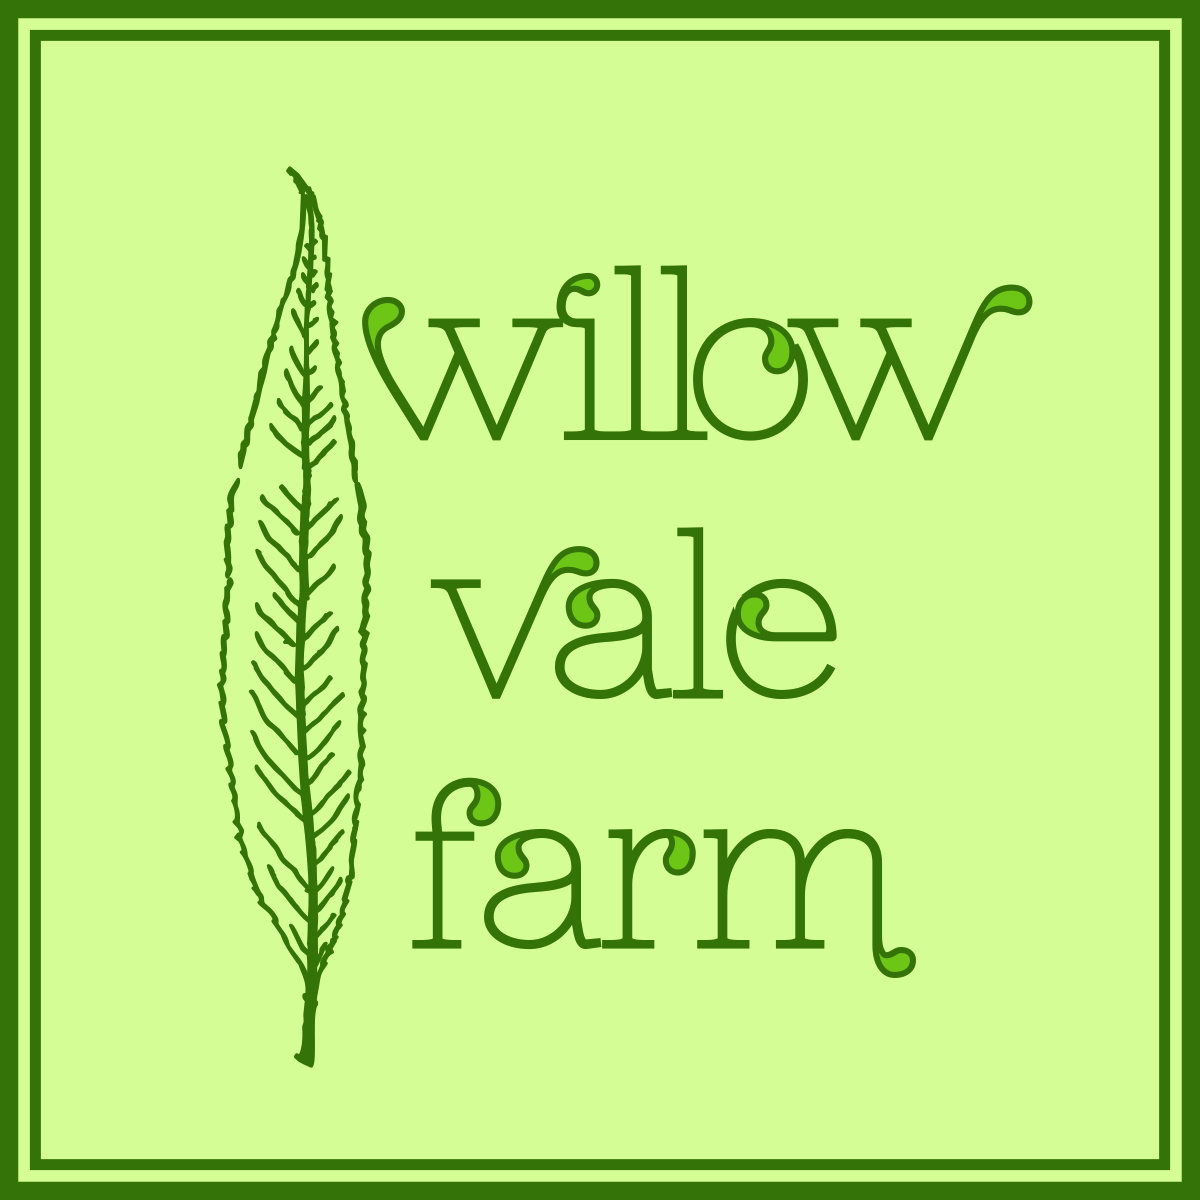 Logo_Willow Vale Farm square.jpg